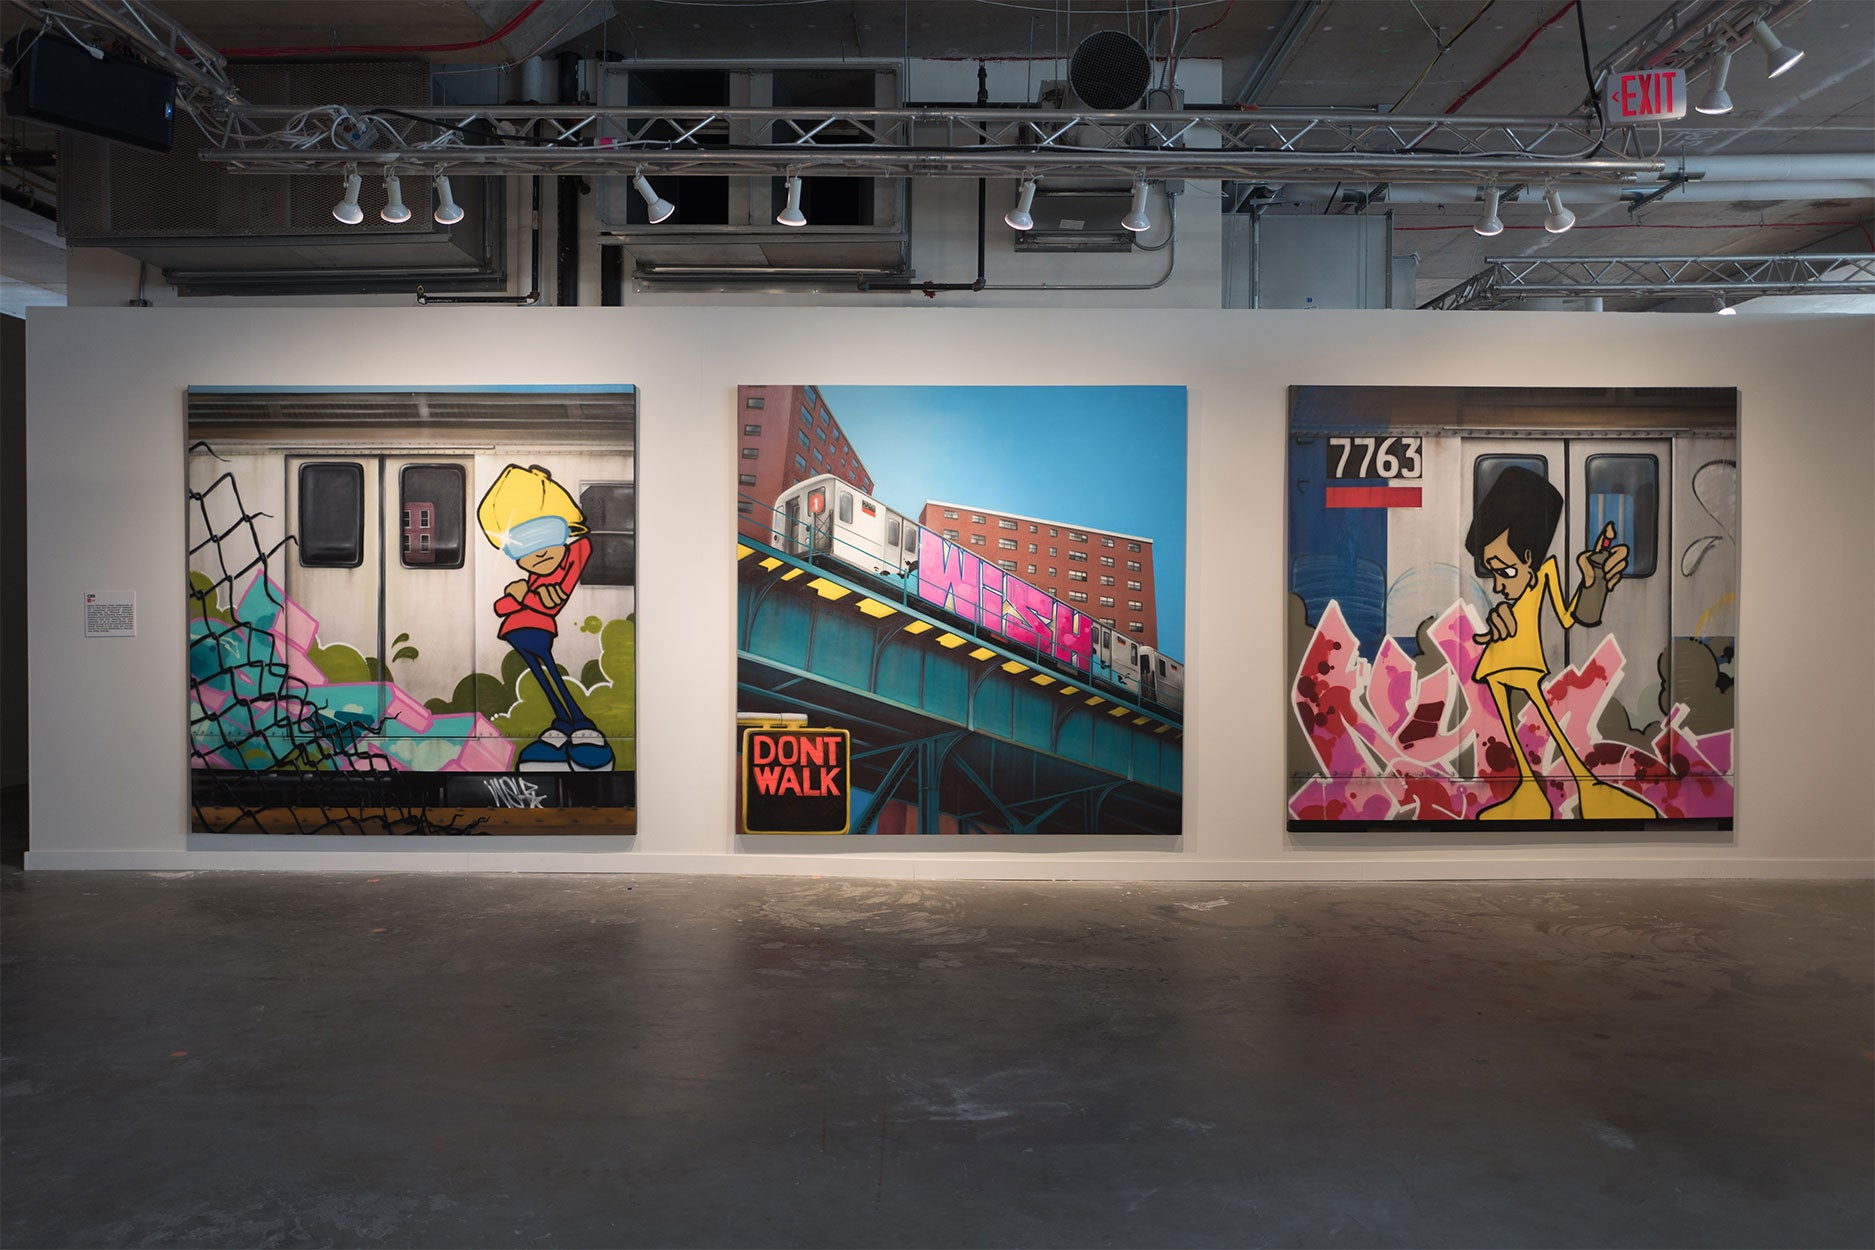 From Vandals to Vanguards, This Exhibition Shows the